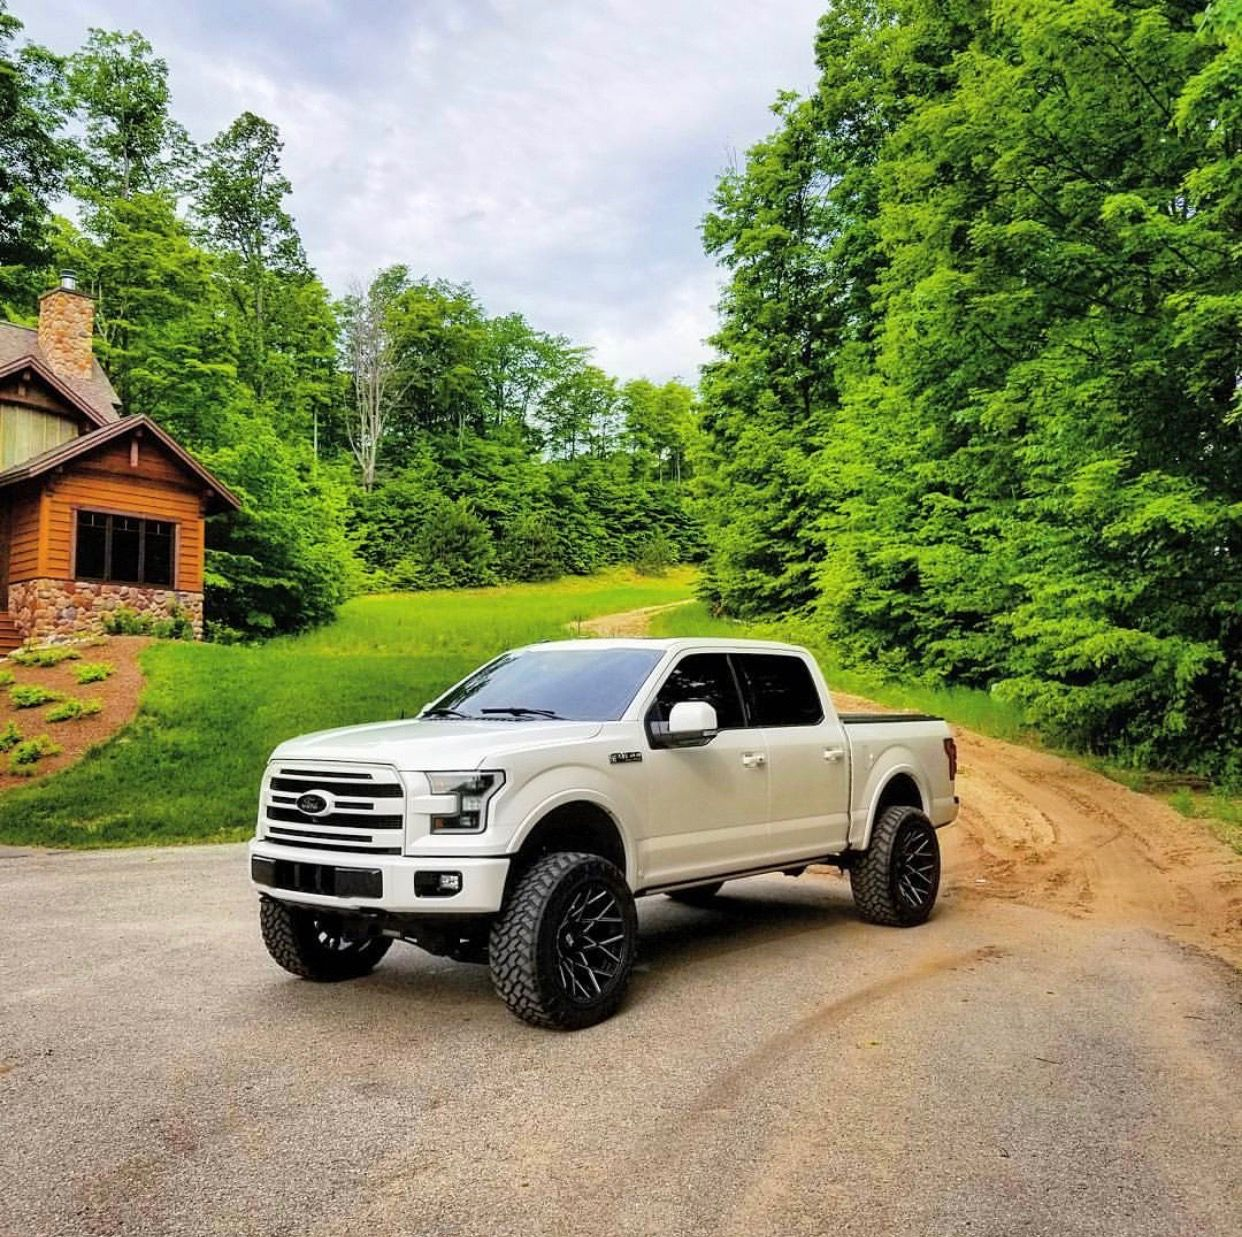 2016 F150 Lifted >> White Lifted 2016 F150 Clean Woods Perfect Cabin Truck